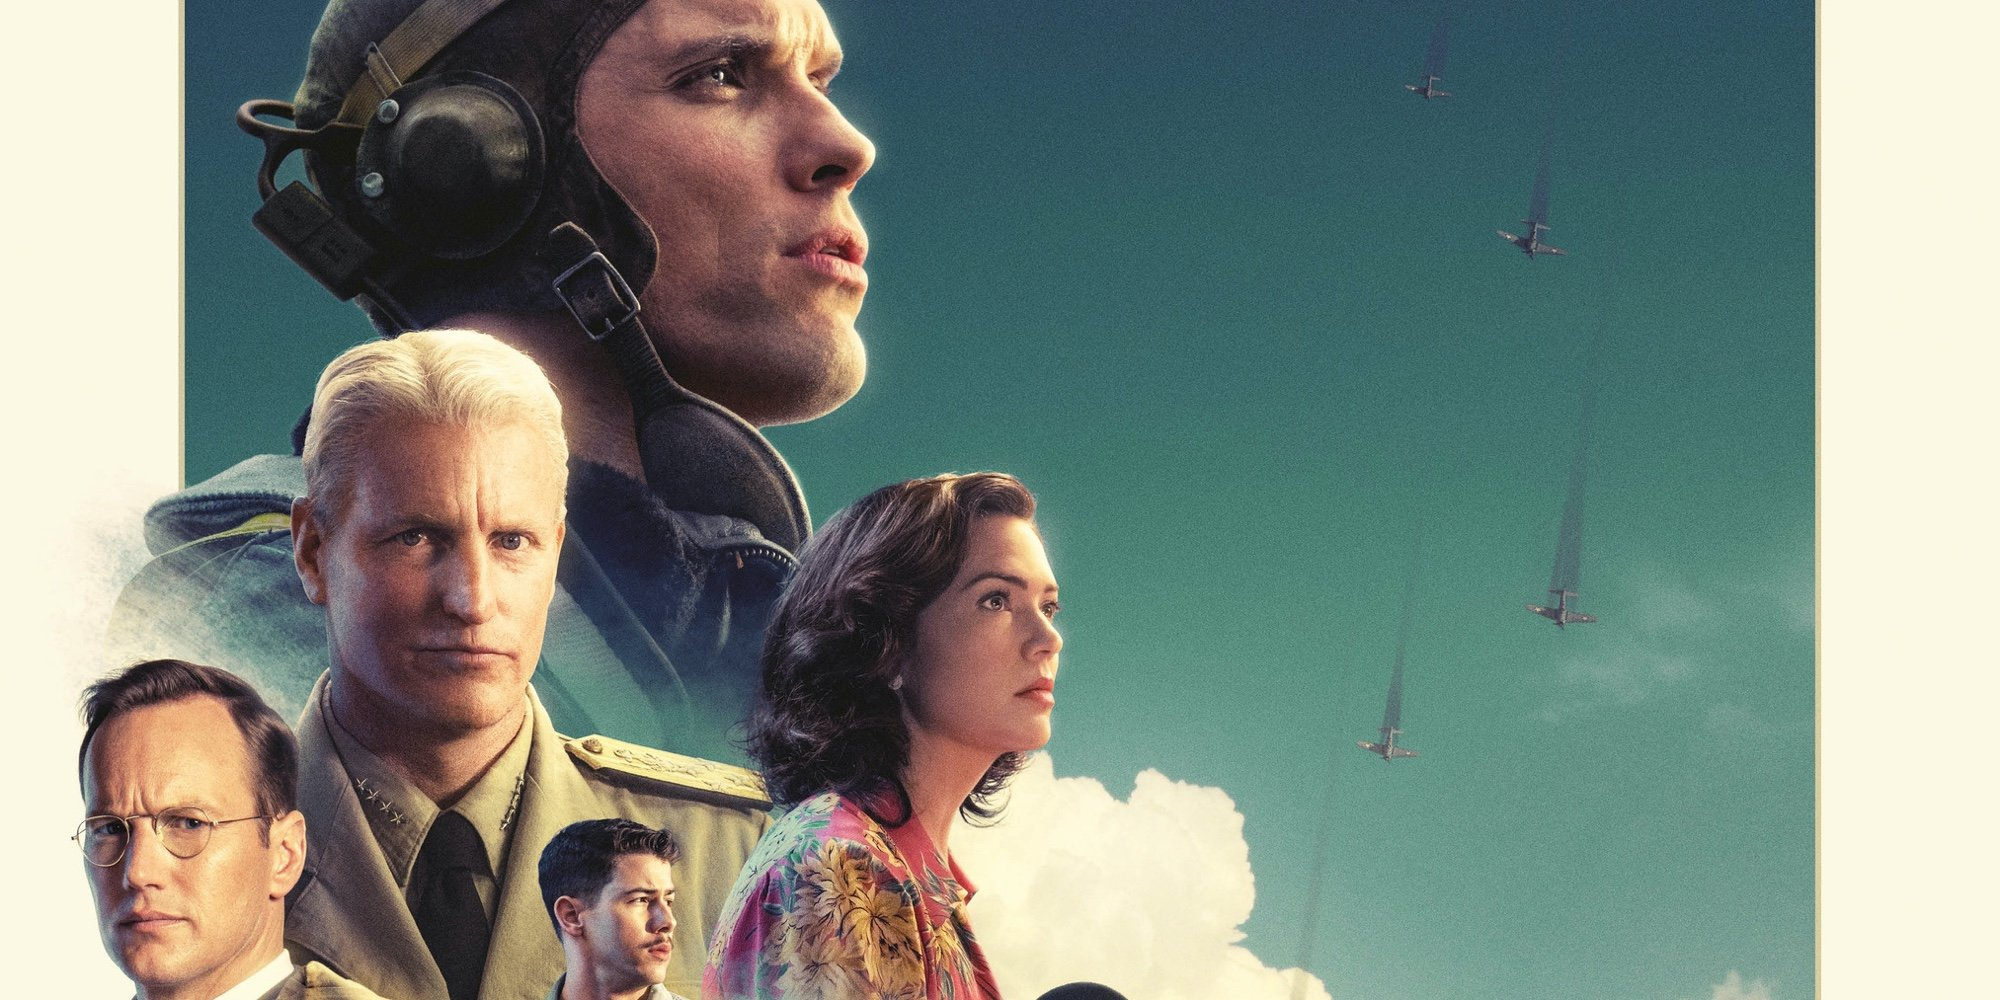 Midway Review: Has its mistakes, but an overall solid war film